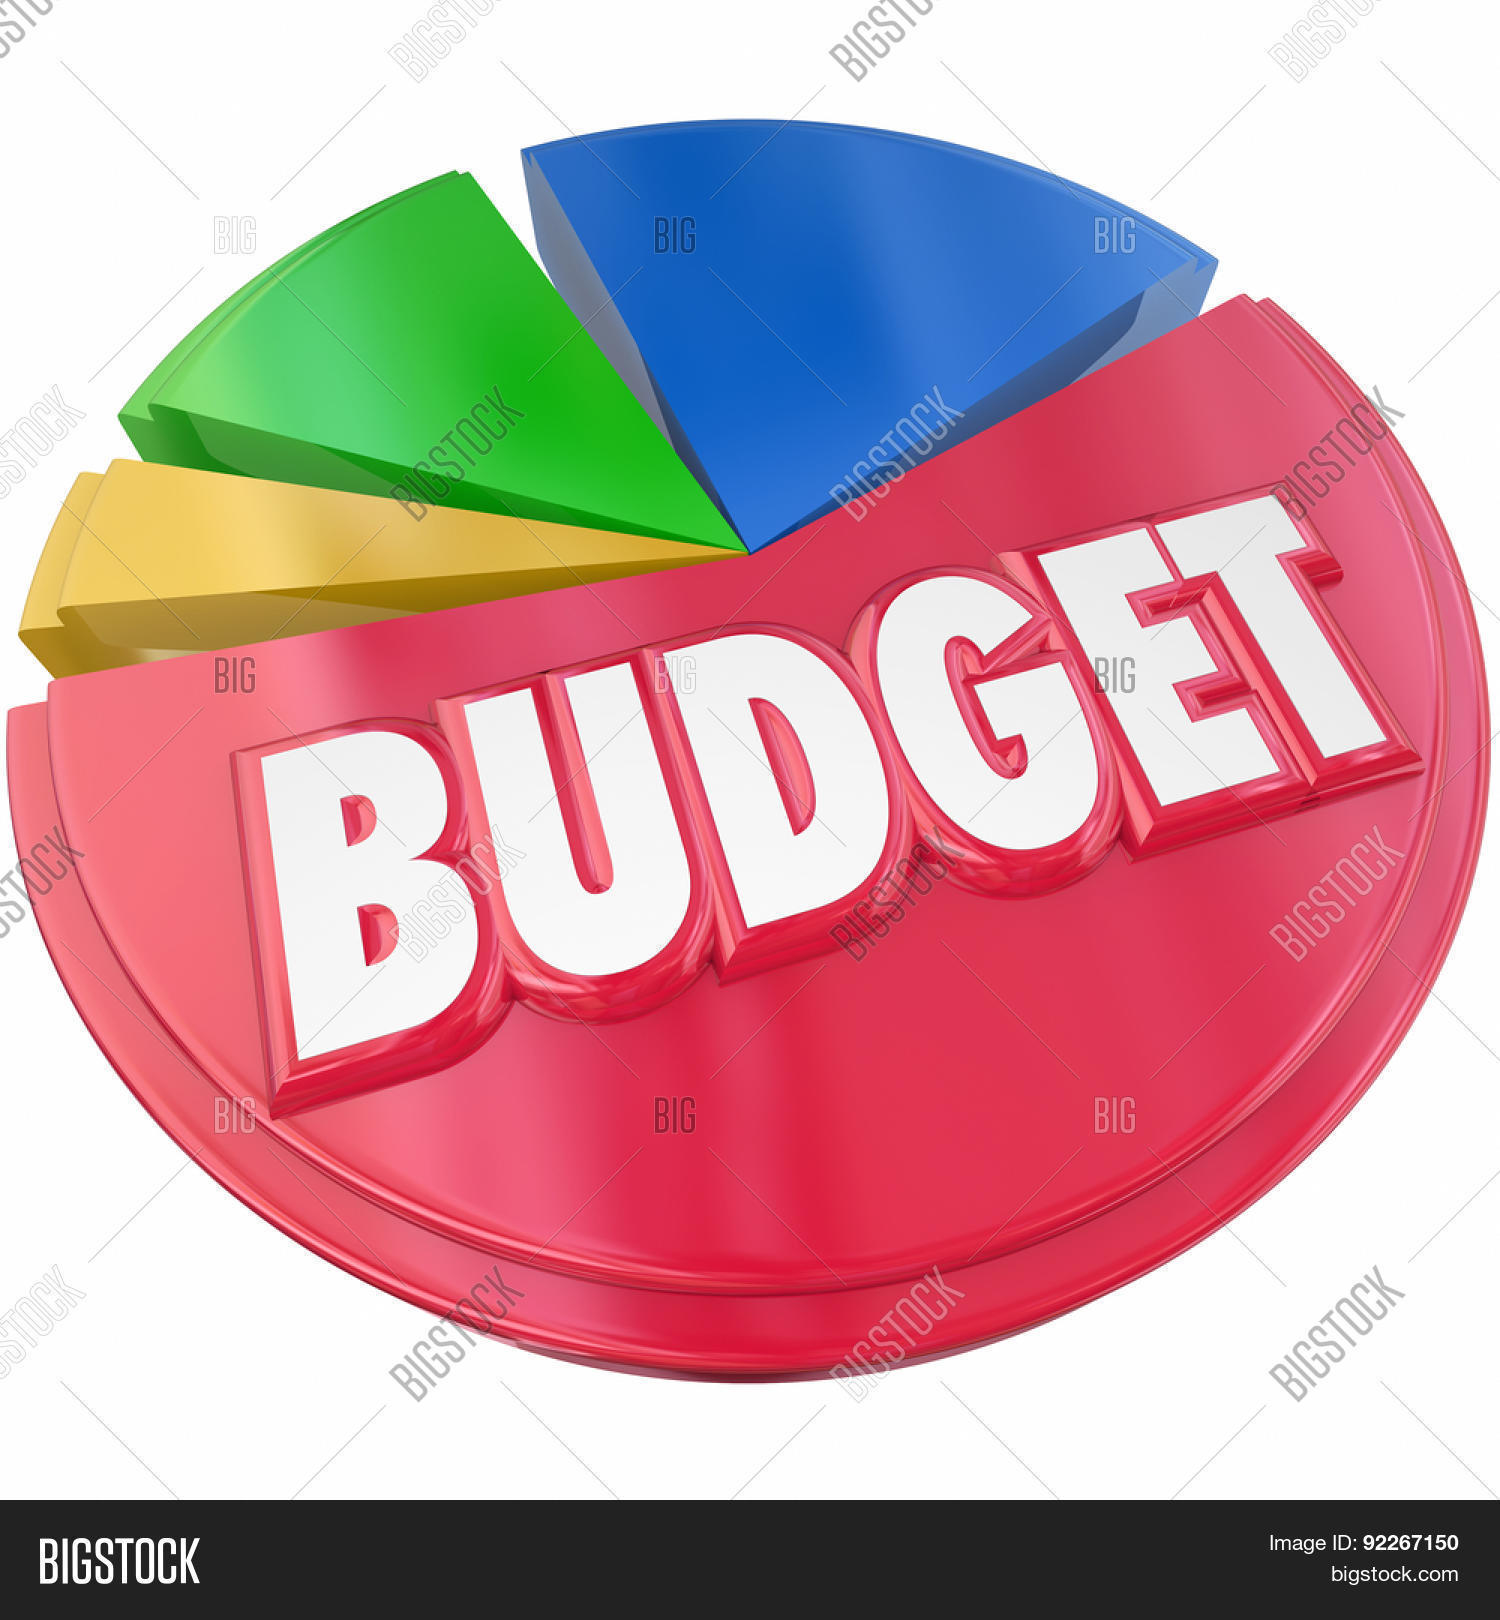 Budget 3d word on pie chart image photo bigstock budget 3d word on a pie chart to illustrate planning your money spending or saving for nvjuhfo Image collections